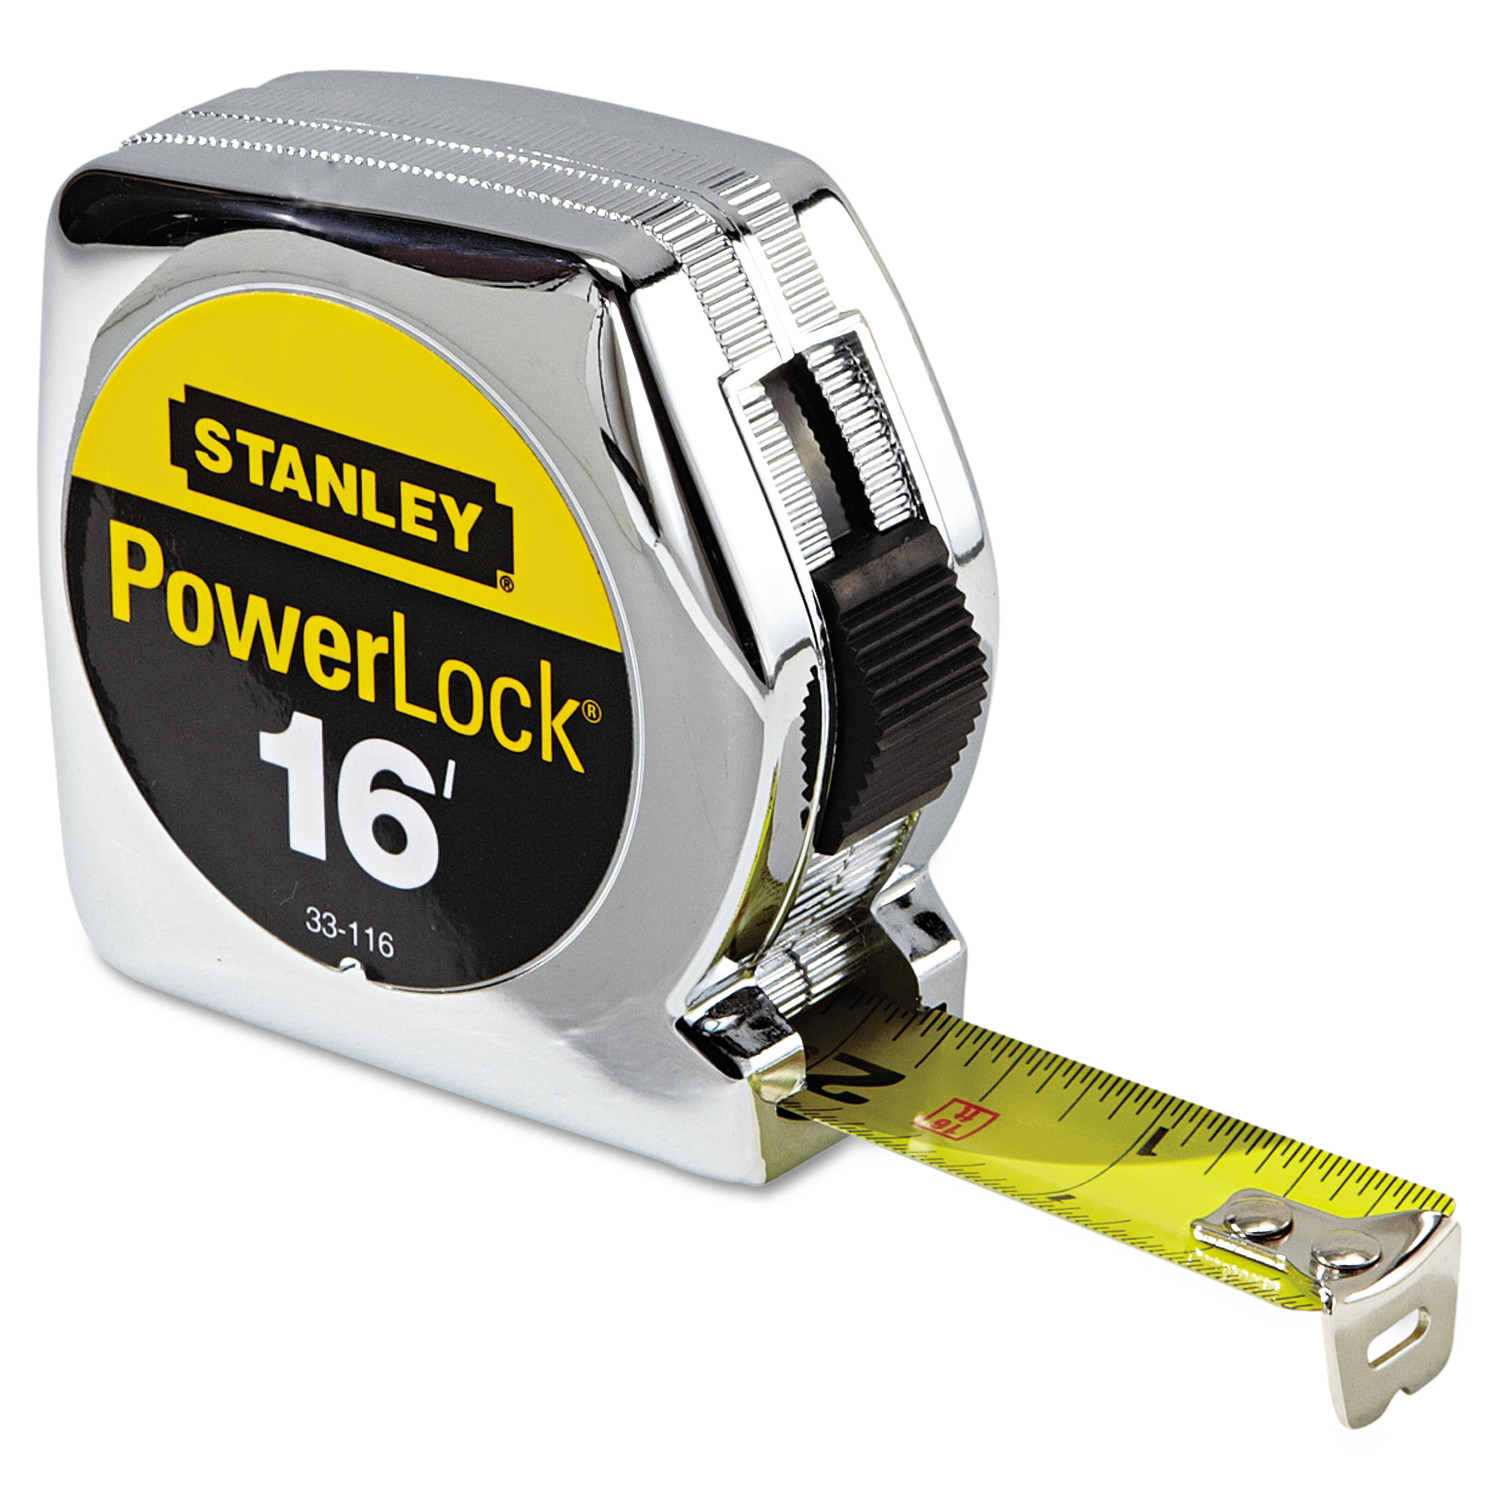 "Stanley Tools Powerlock Tape Rule, 3/4"" x 16ft, Plastic Case, Chrome, 1/32"" Graduation"